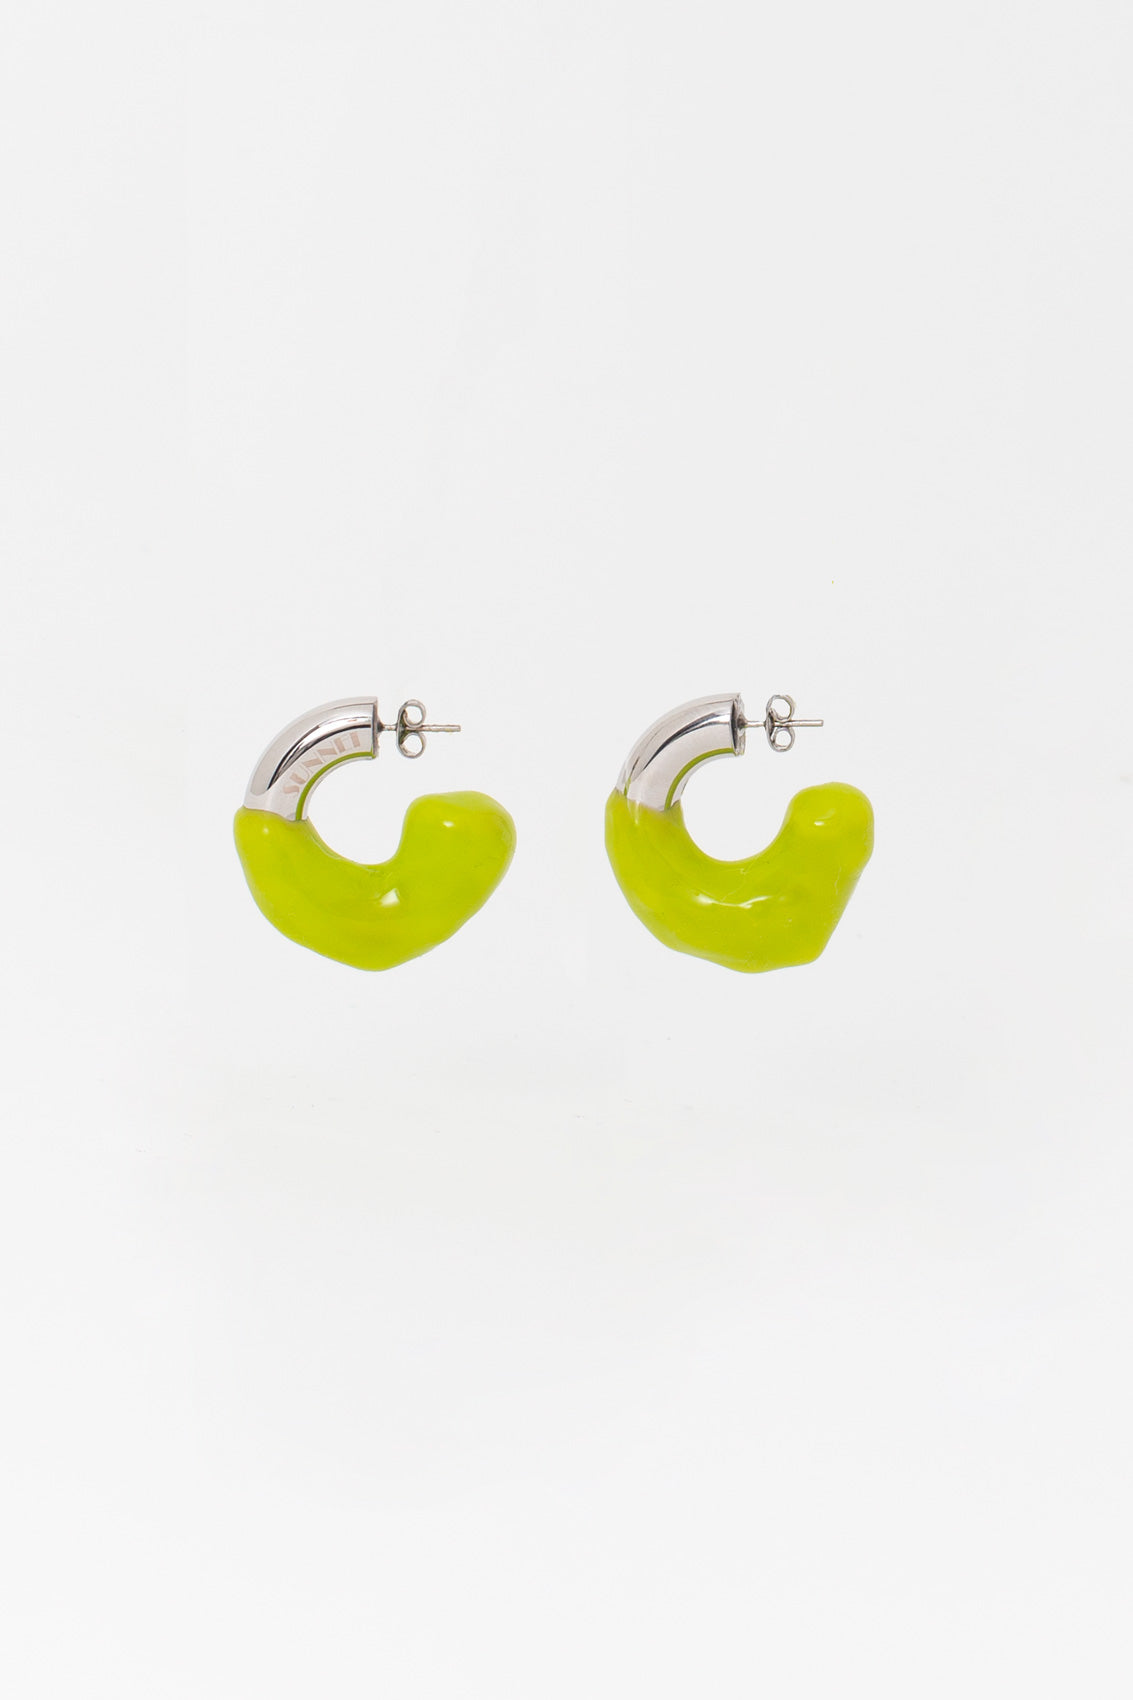 GREEN RUBBERIZED SMALL SILVER EARRINGS